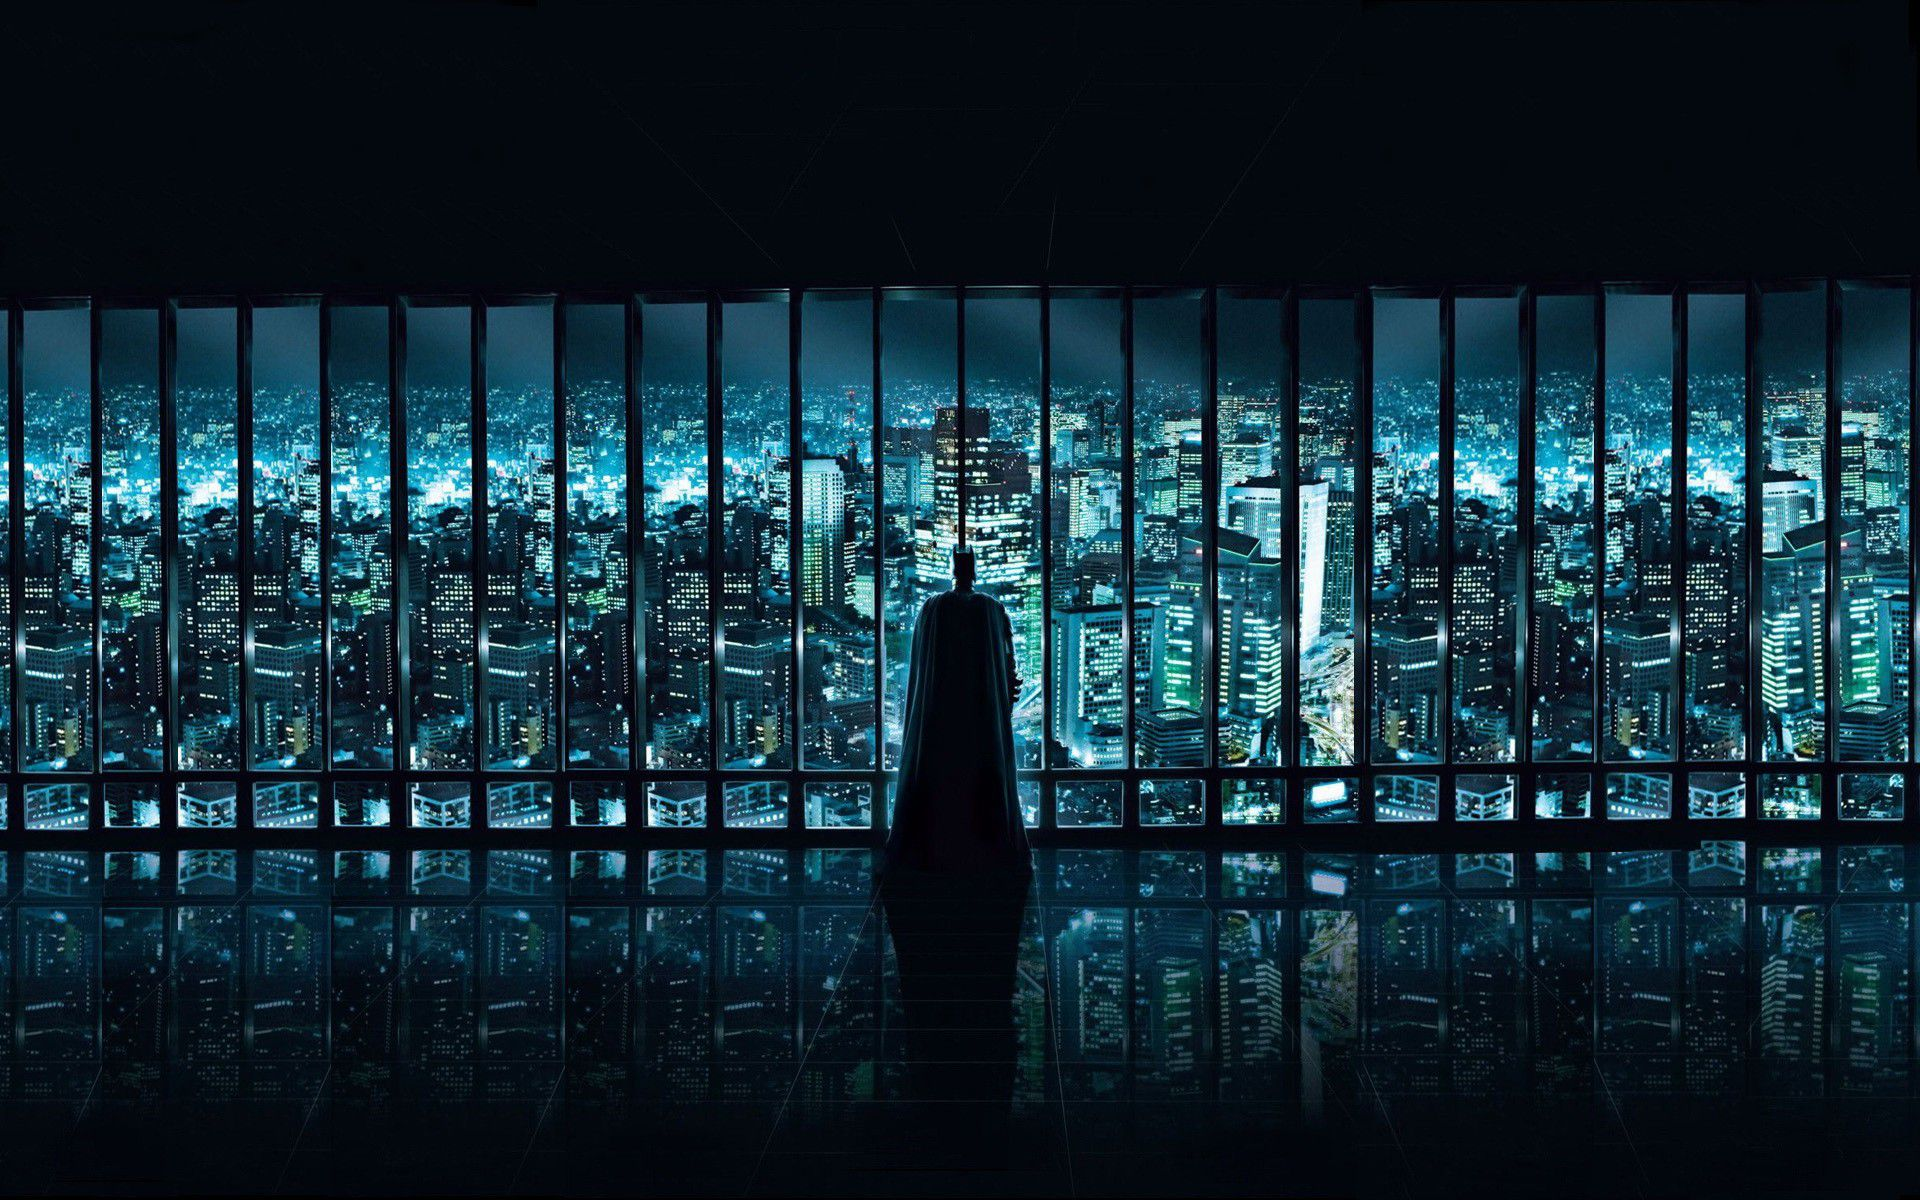 Batman Desktop Wallpaper, PK17 High Resolution Batman Pictures